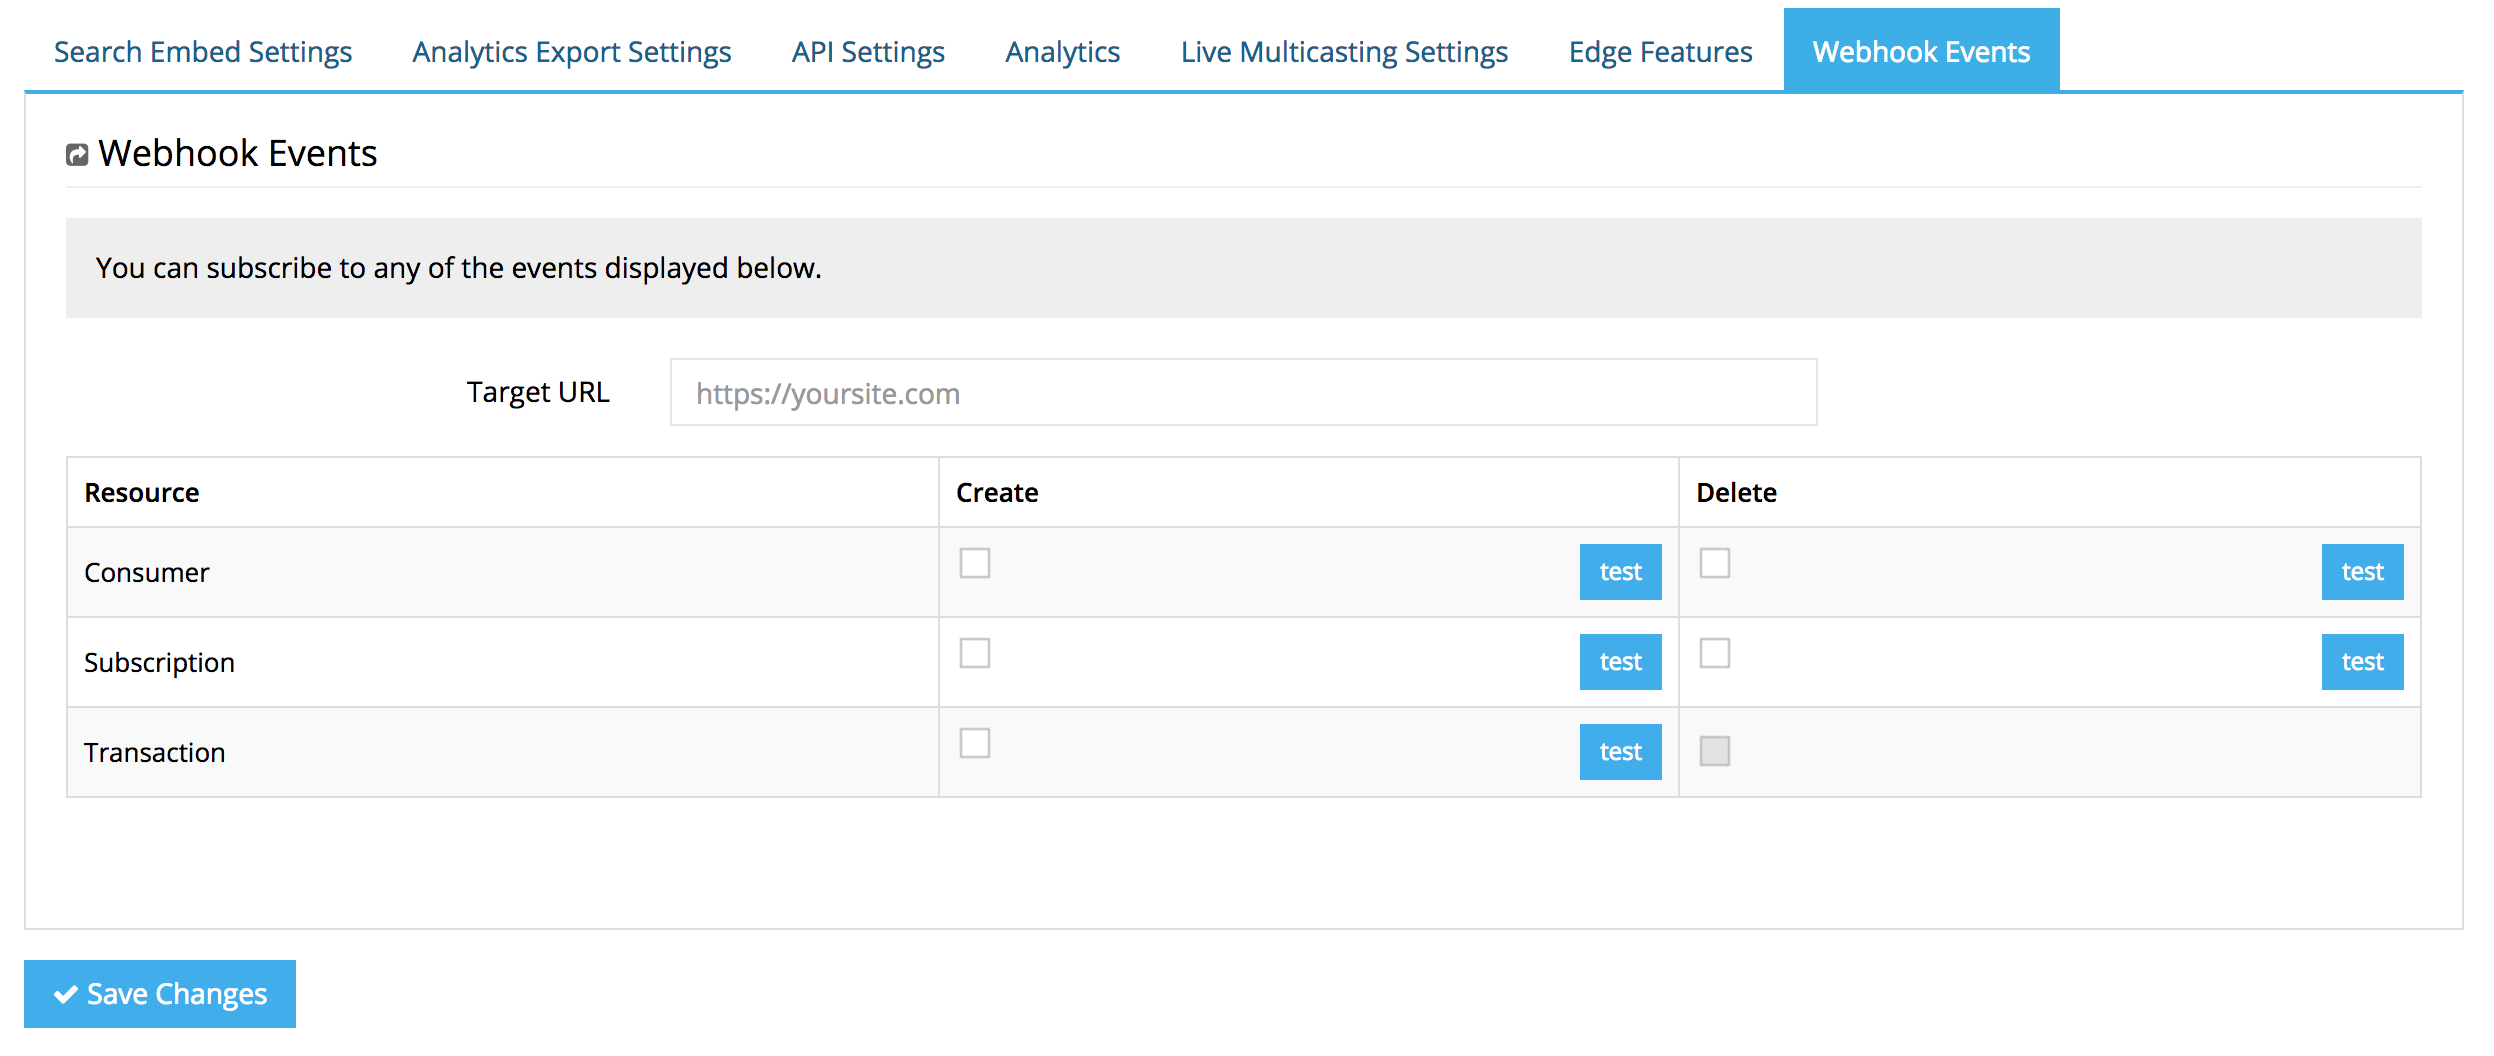 Getting Started with Zype's Webhook Service – Help Center